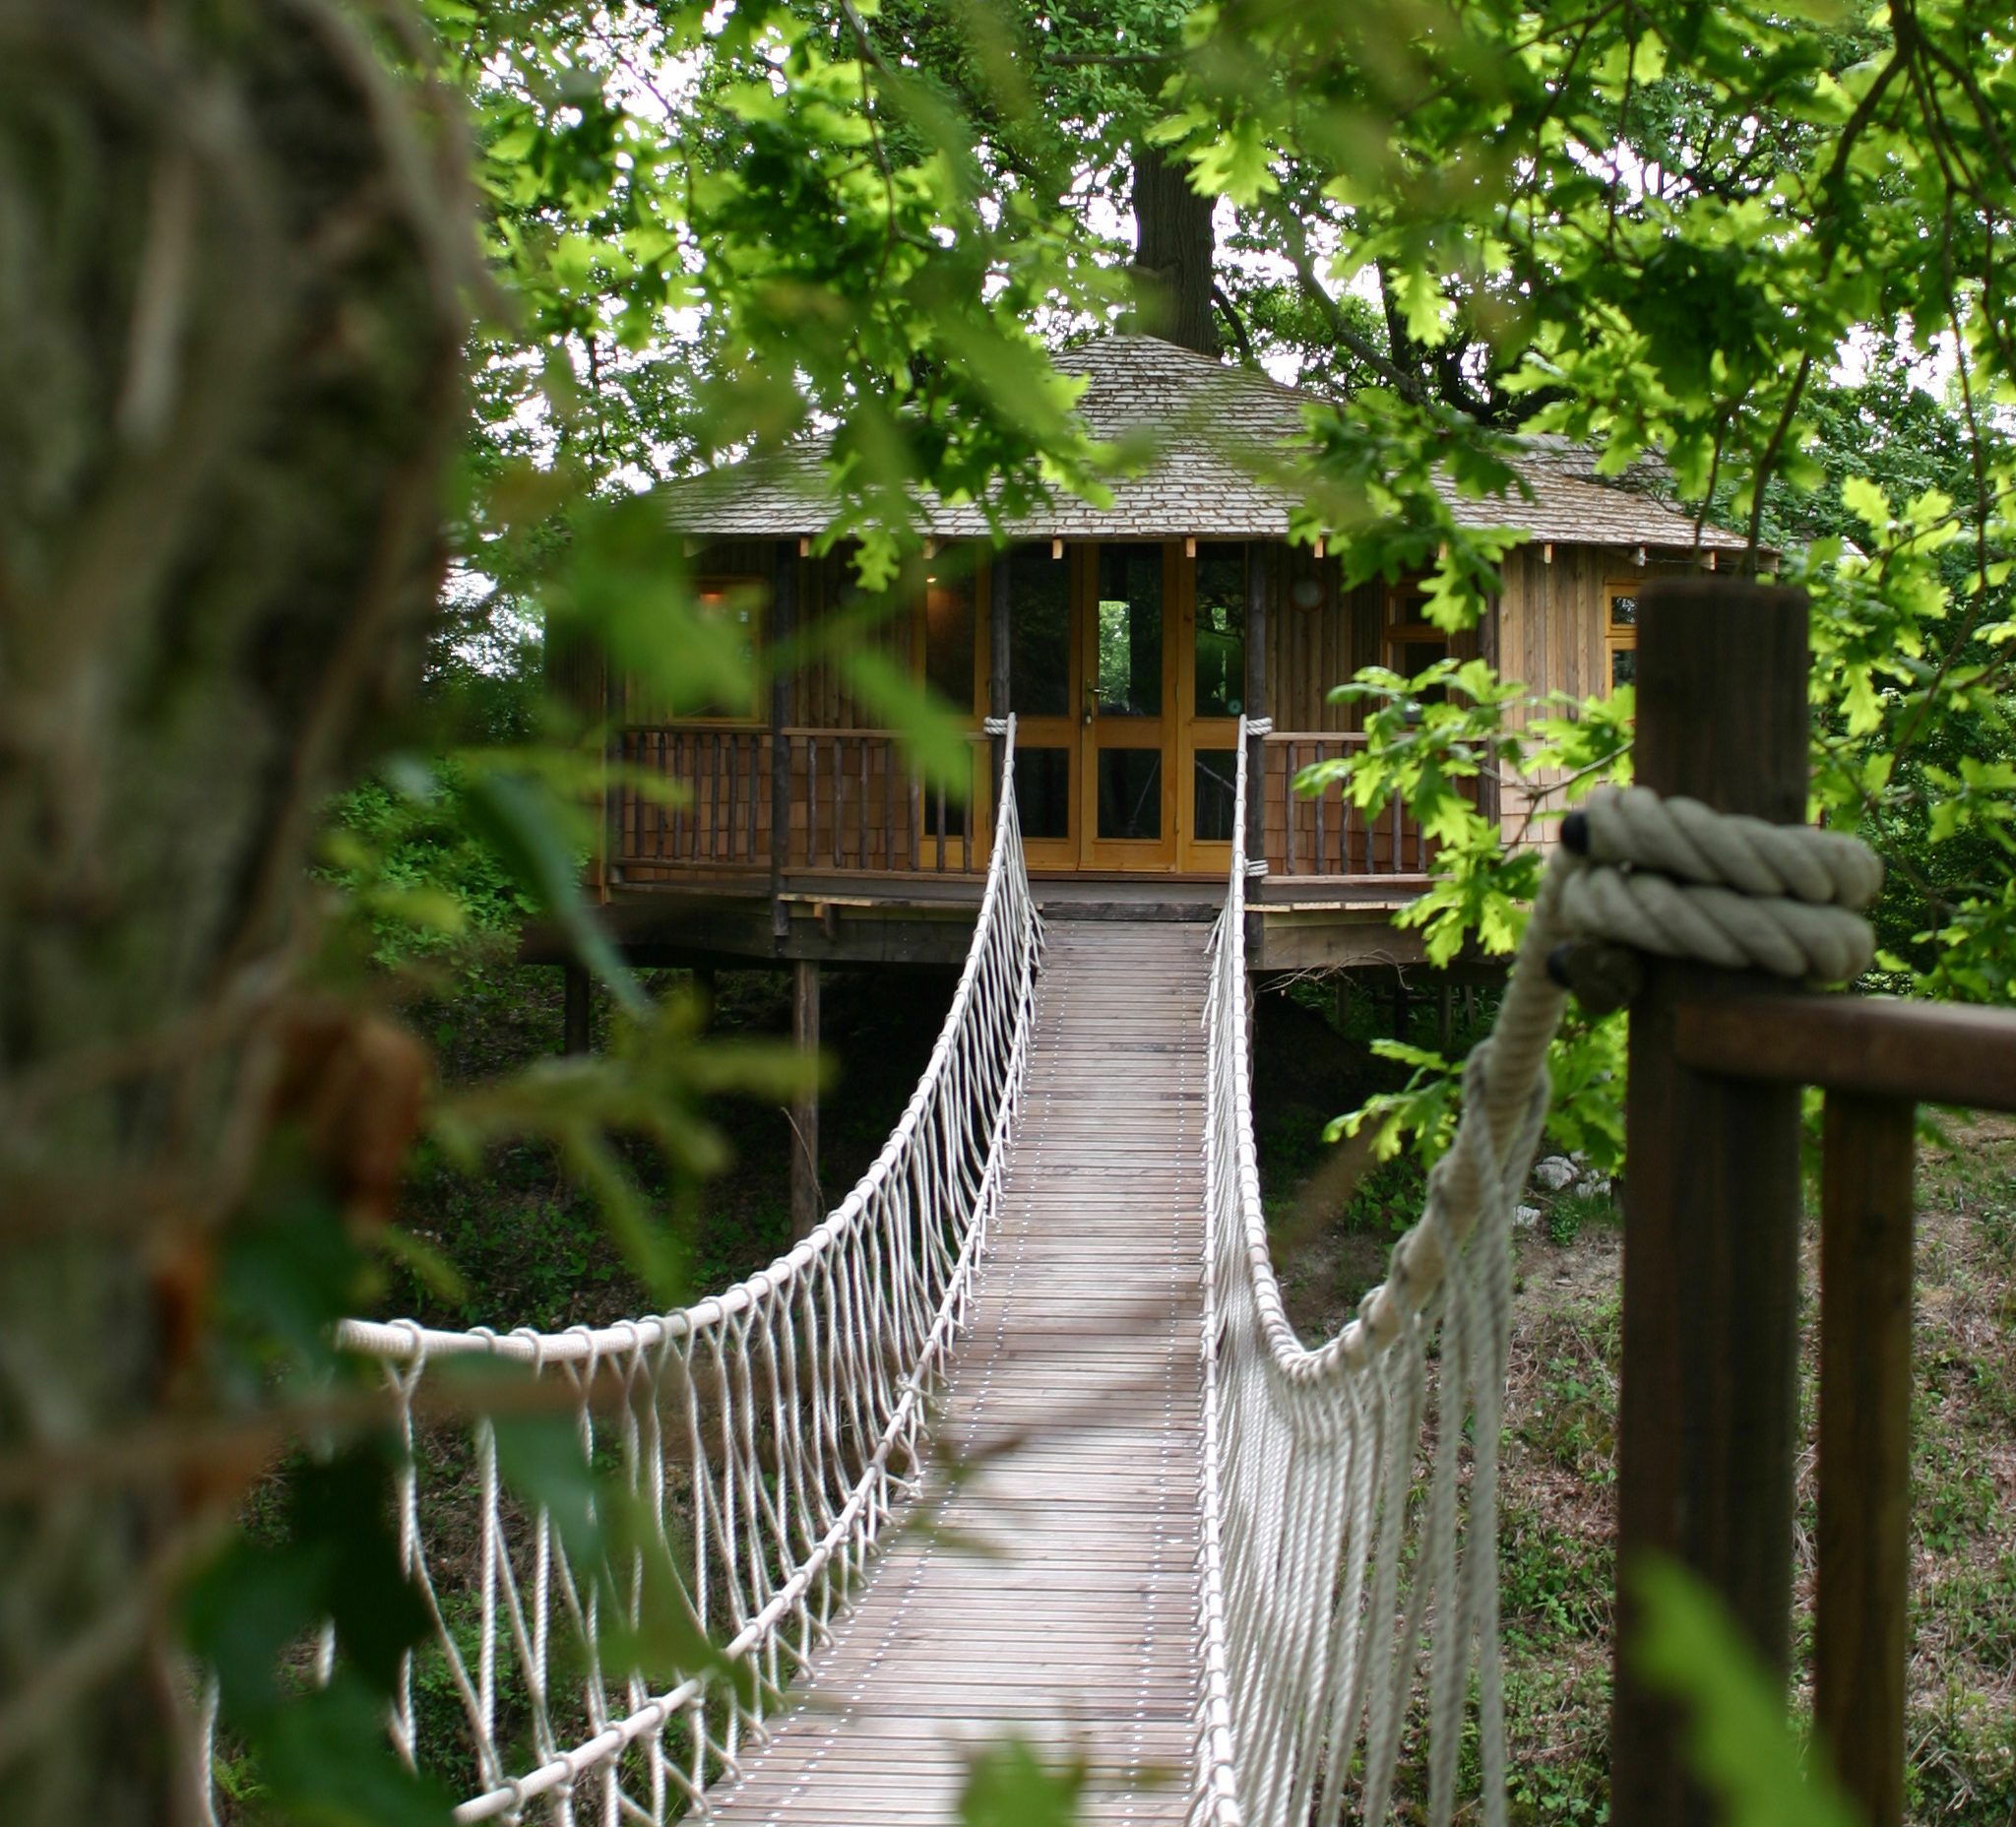 Bensfield Treehouse - - Quality Unearthed